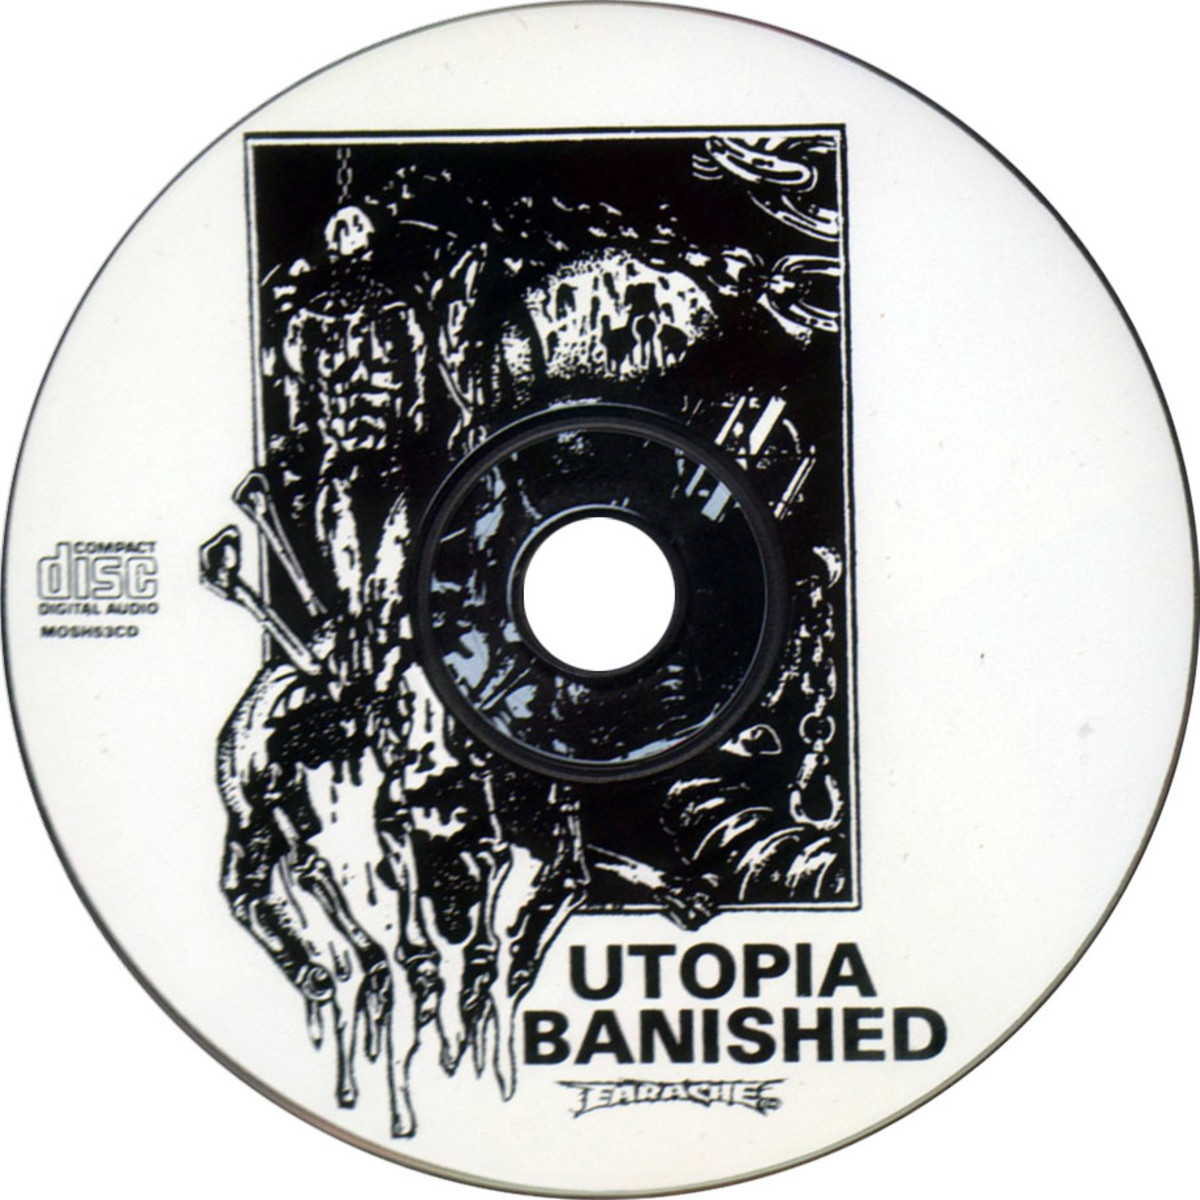 Review of the Album Utopia Banished By British Death Metal Band Napalm Death